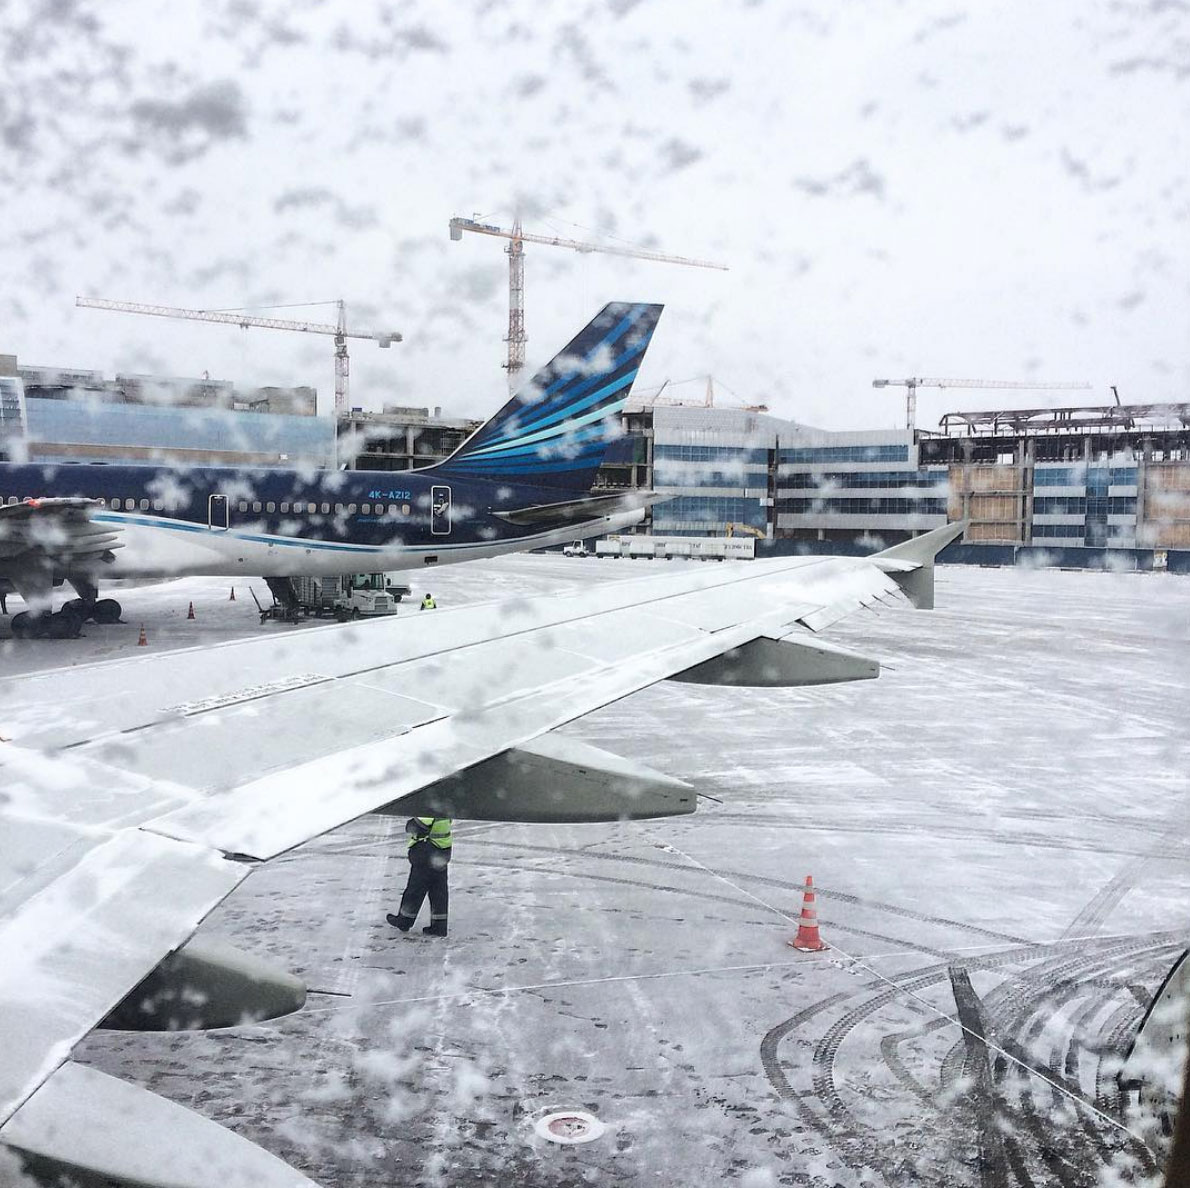 Picture of the snowy airport in Moscow, Russia